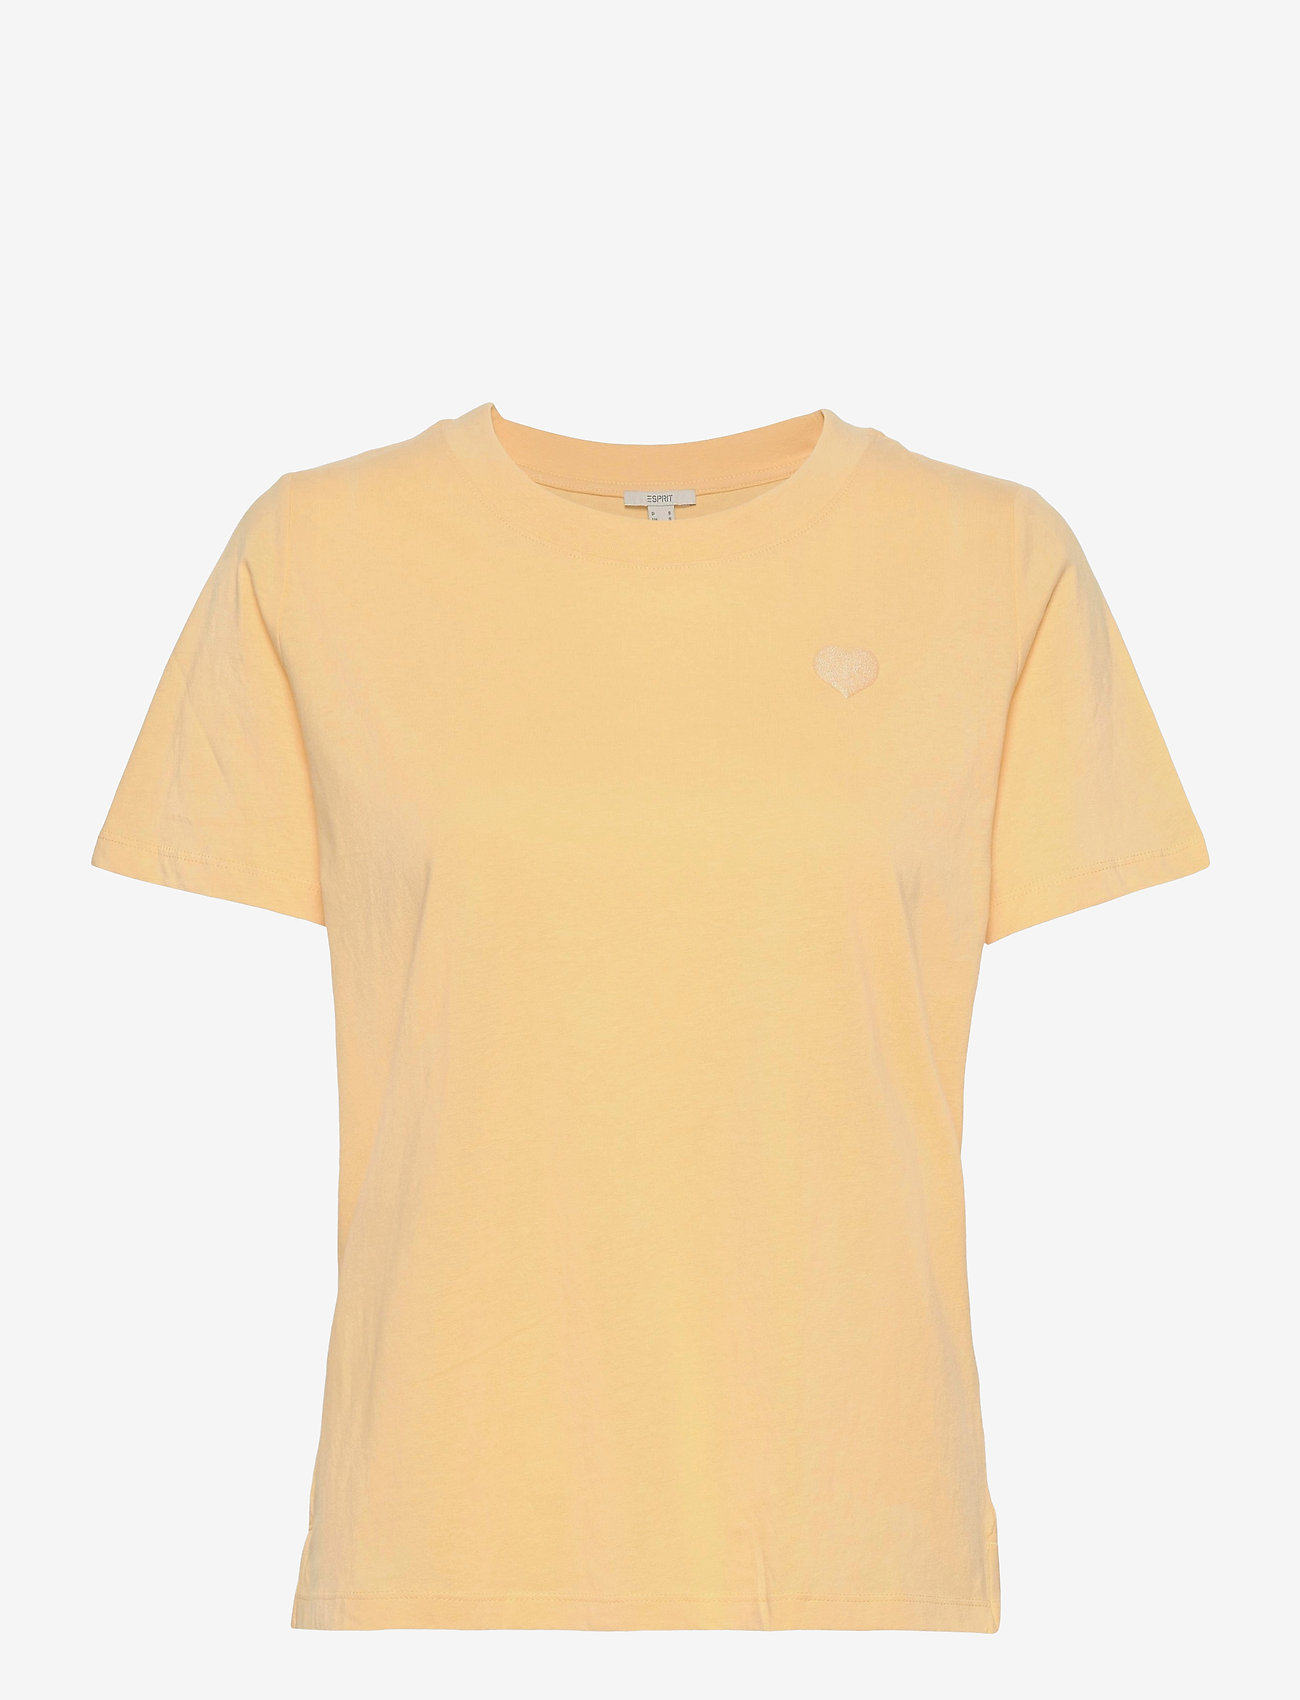 Esprit Casual - T-Shirts - t-shirts - sunflower yellow - 0